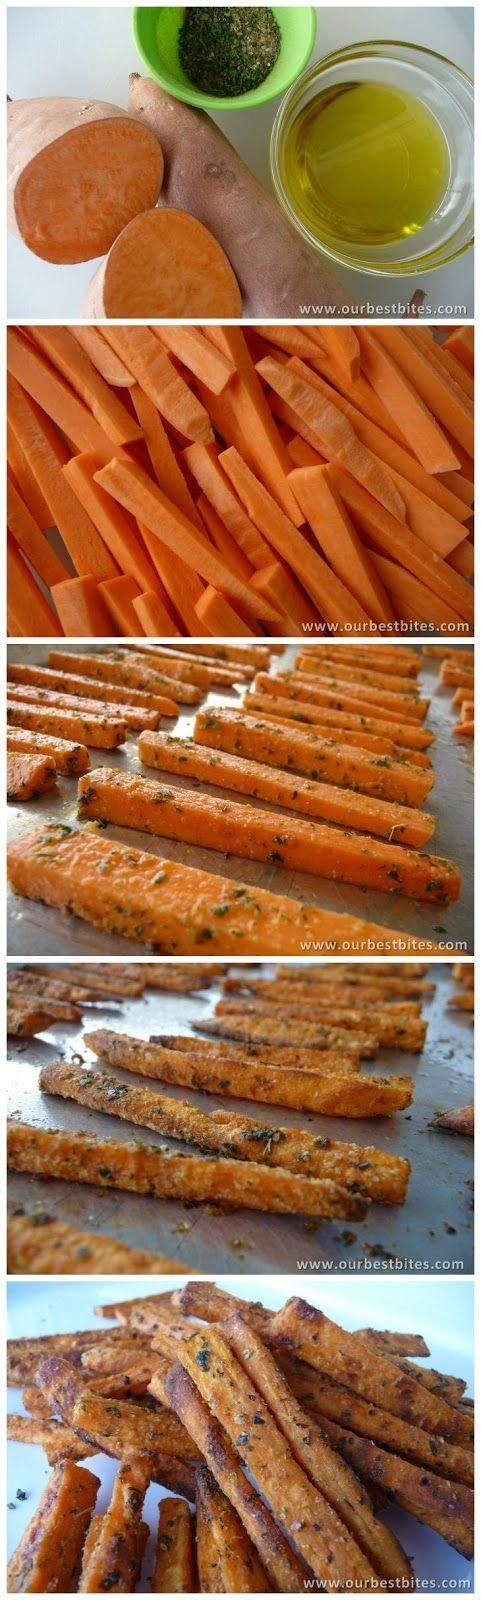 Baked Sweet Potato Fries - Love with recipe